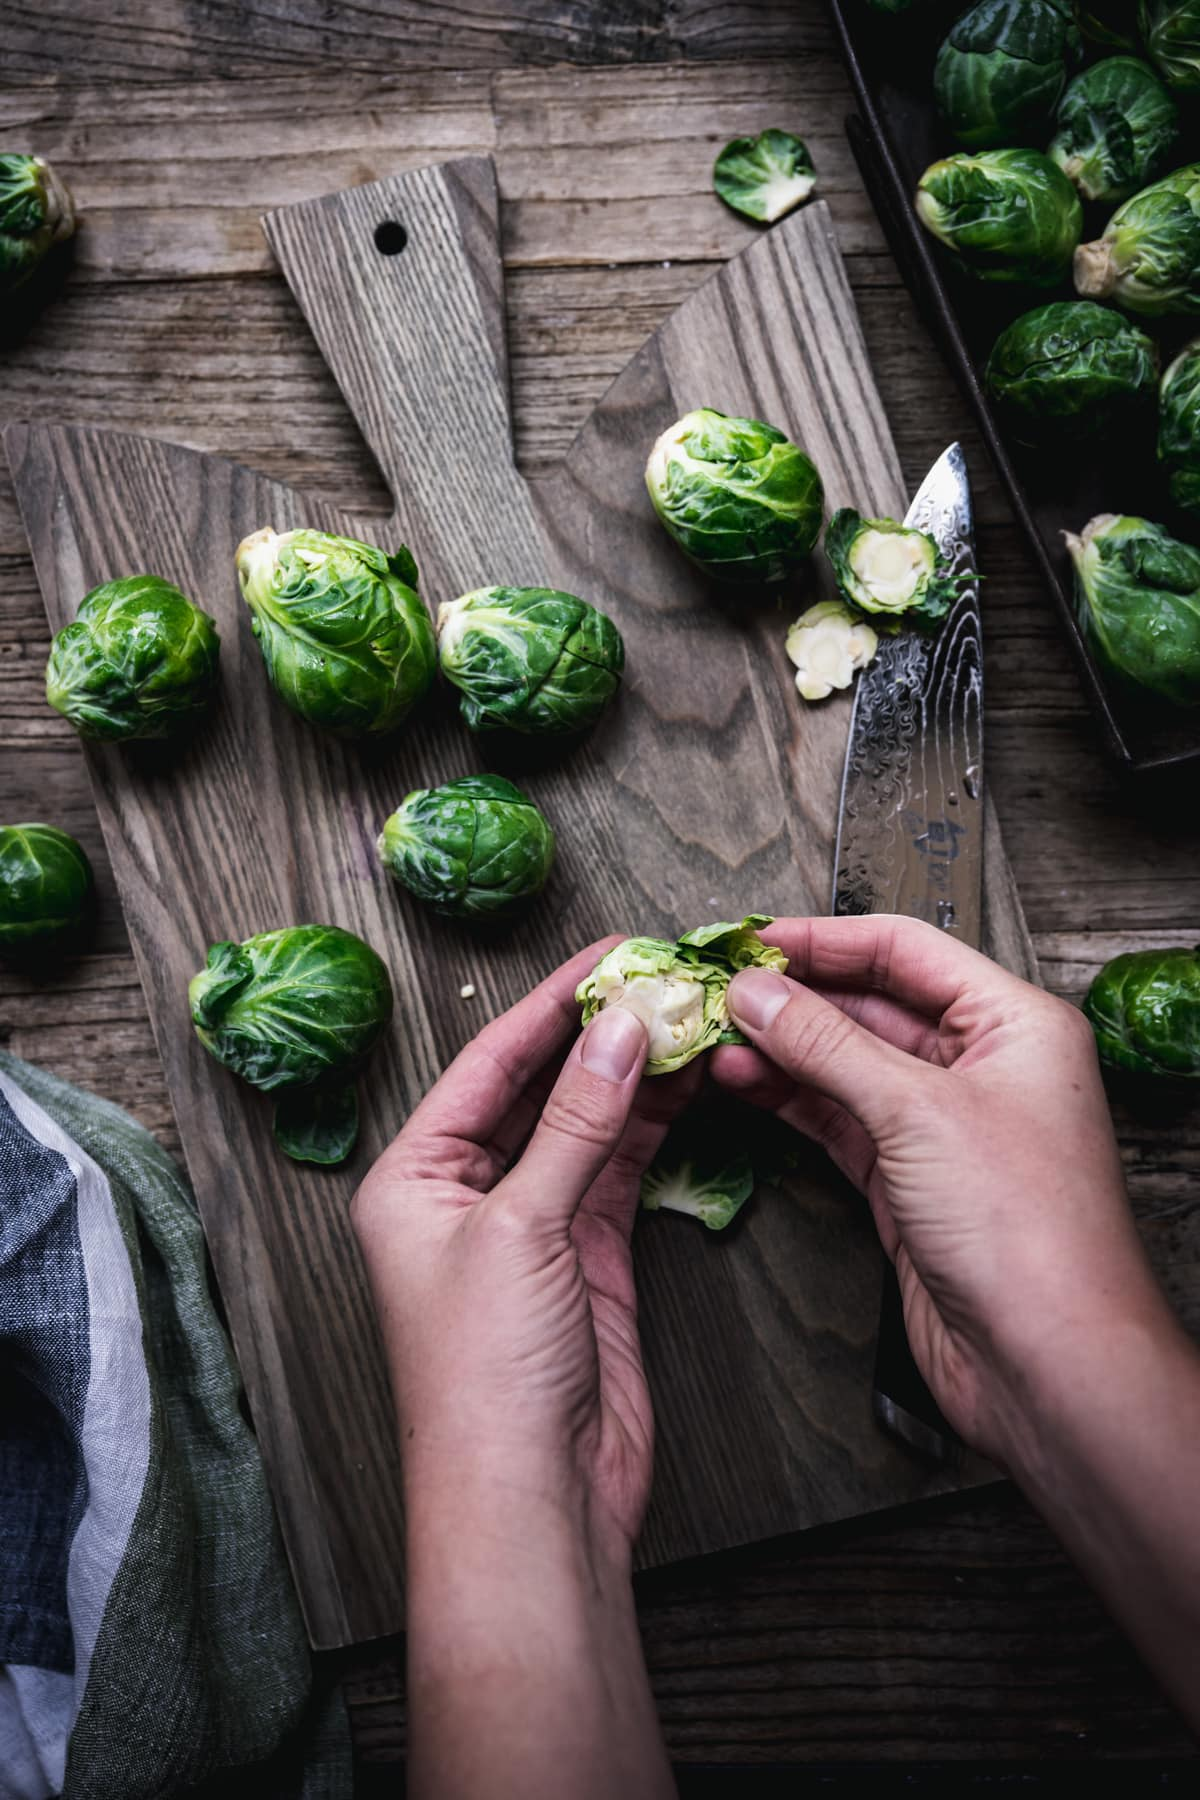 overhead view of person peeling leaves form a brussels sprout.